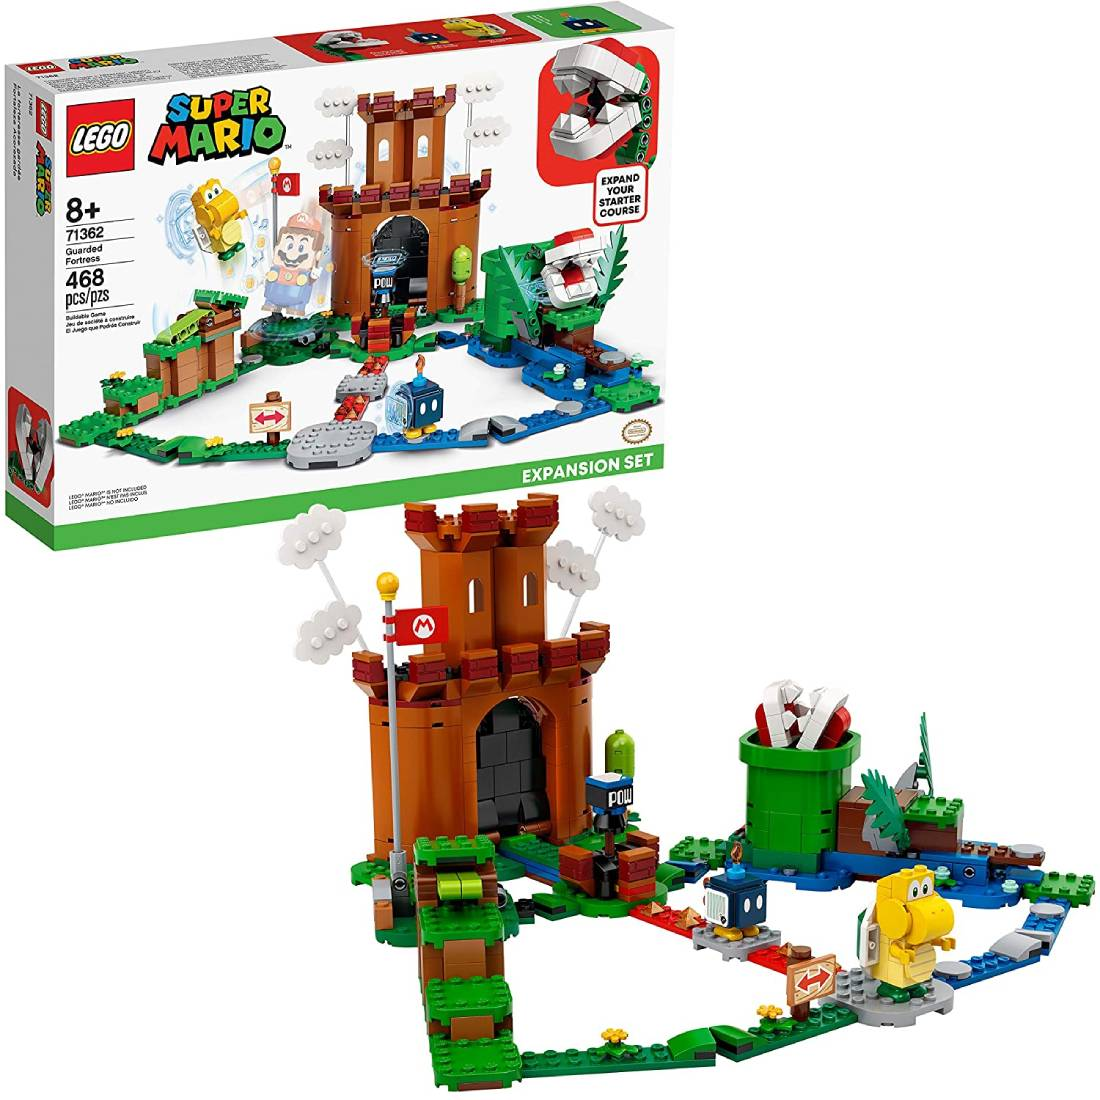 LEGO Super Mario Guarded Fortress Expansion Set 468 piezas